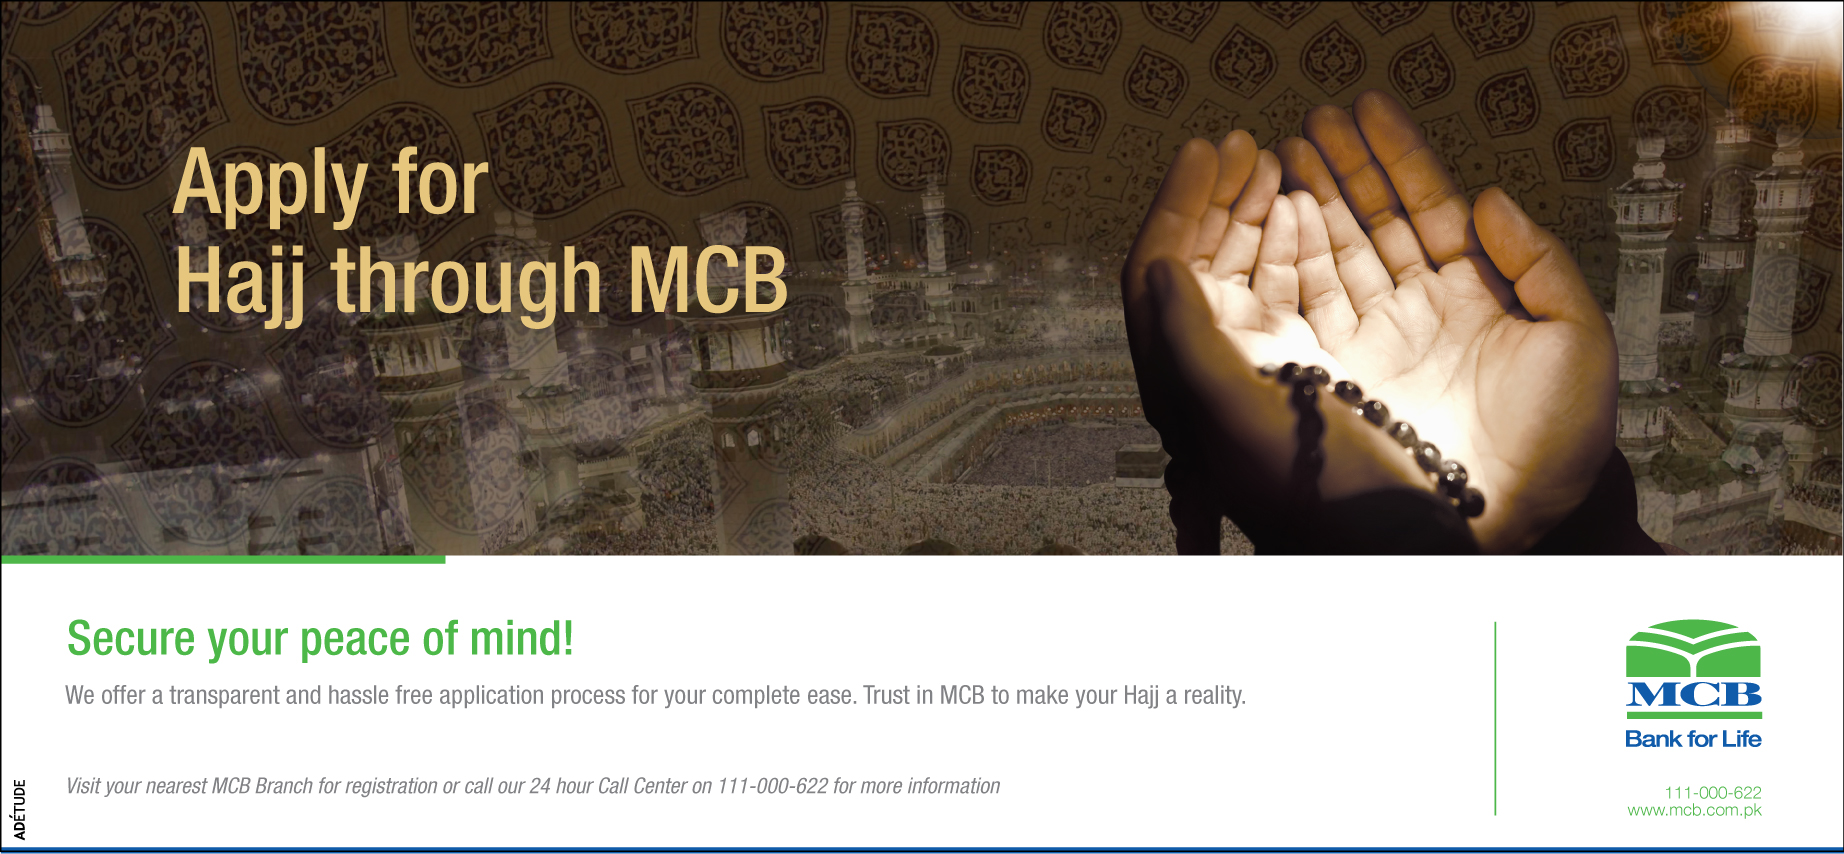 Mcb Bank Pakistan Media Center Press Ads